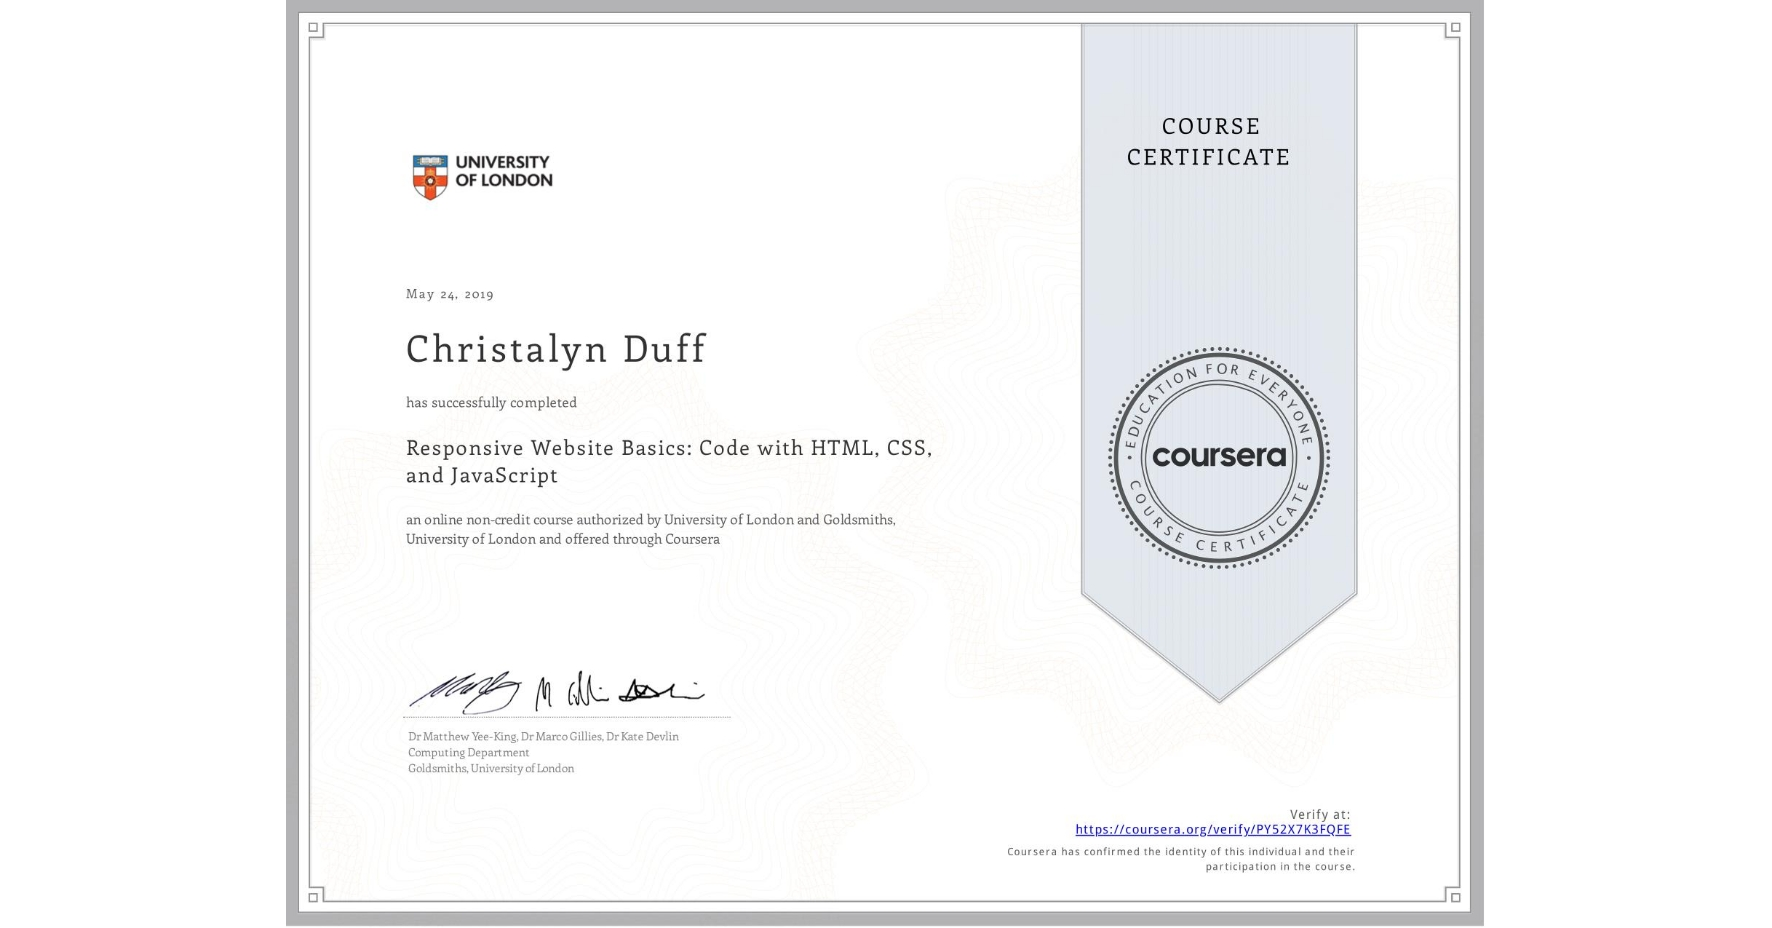 View certificate for Christalyn Duff, Responsive Website Basics: Code with HTML, CSS, and JavaScript , an online non-credit course authorized by University of London & Goldsmiths, University of London and offered through Coursera